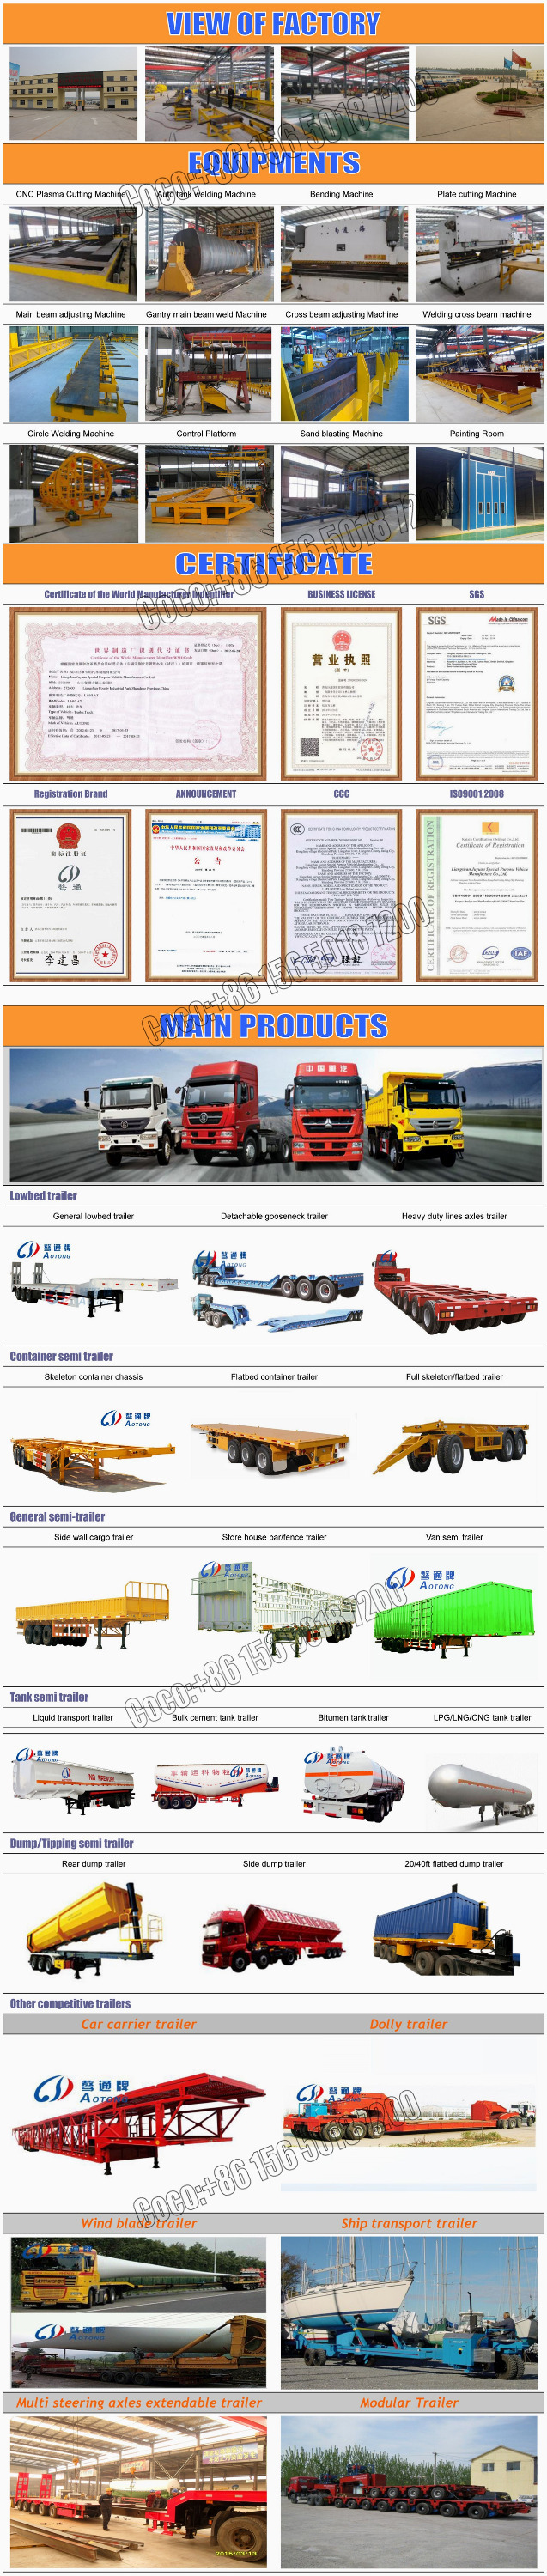 Aotong 2 Double Axles 6 Units Transporting Suv Car Carrier Semi Trailer For  Sale - Buy Car Carrier Trailer,Car Carrier Semi Trailer,2 Axles Car